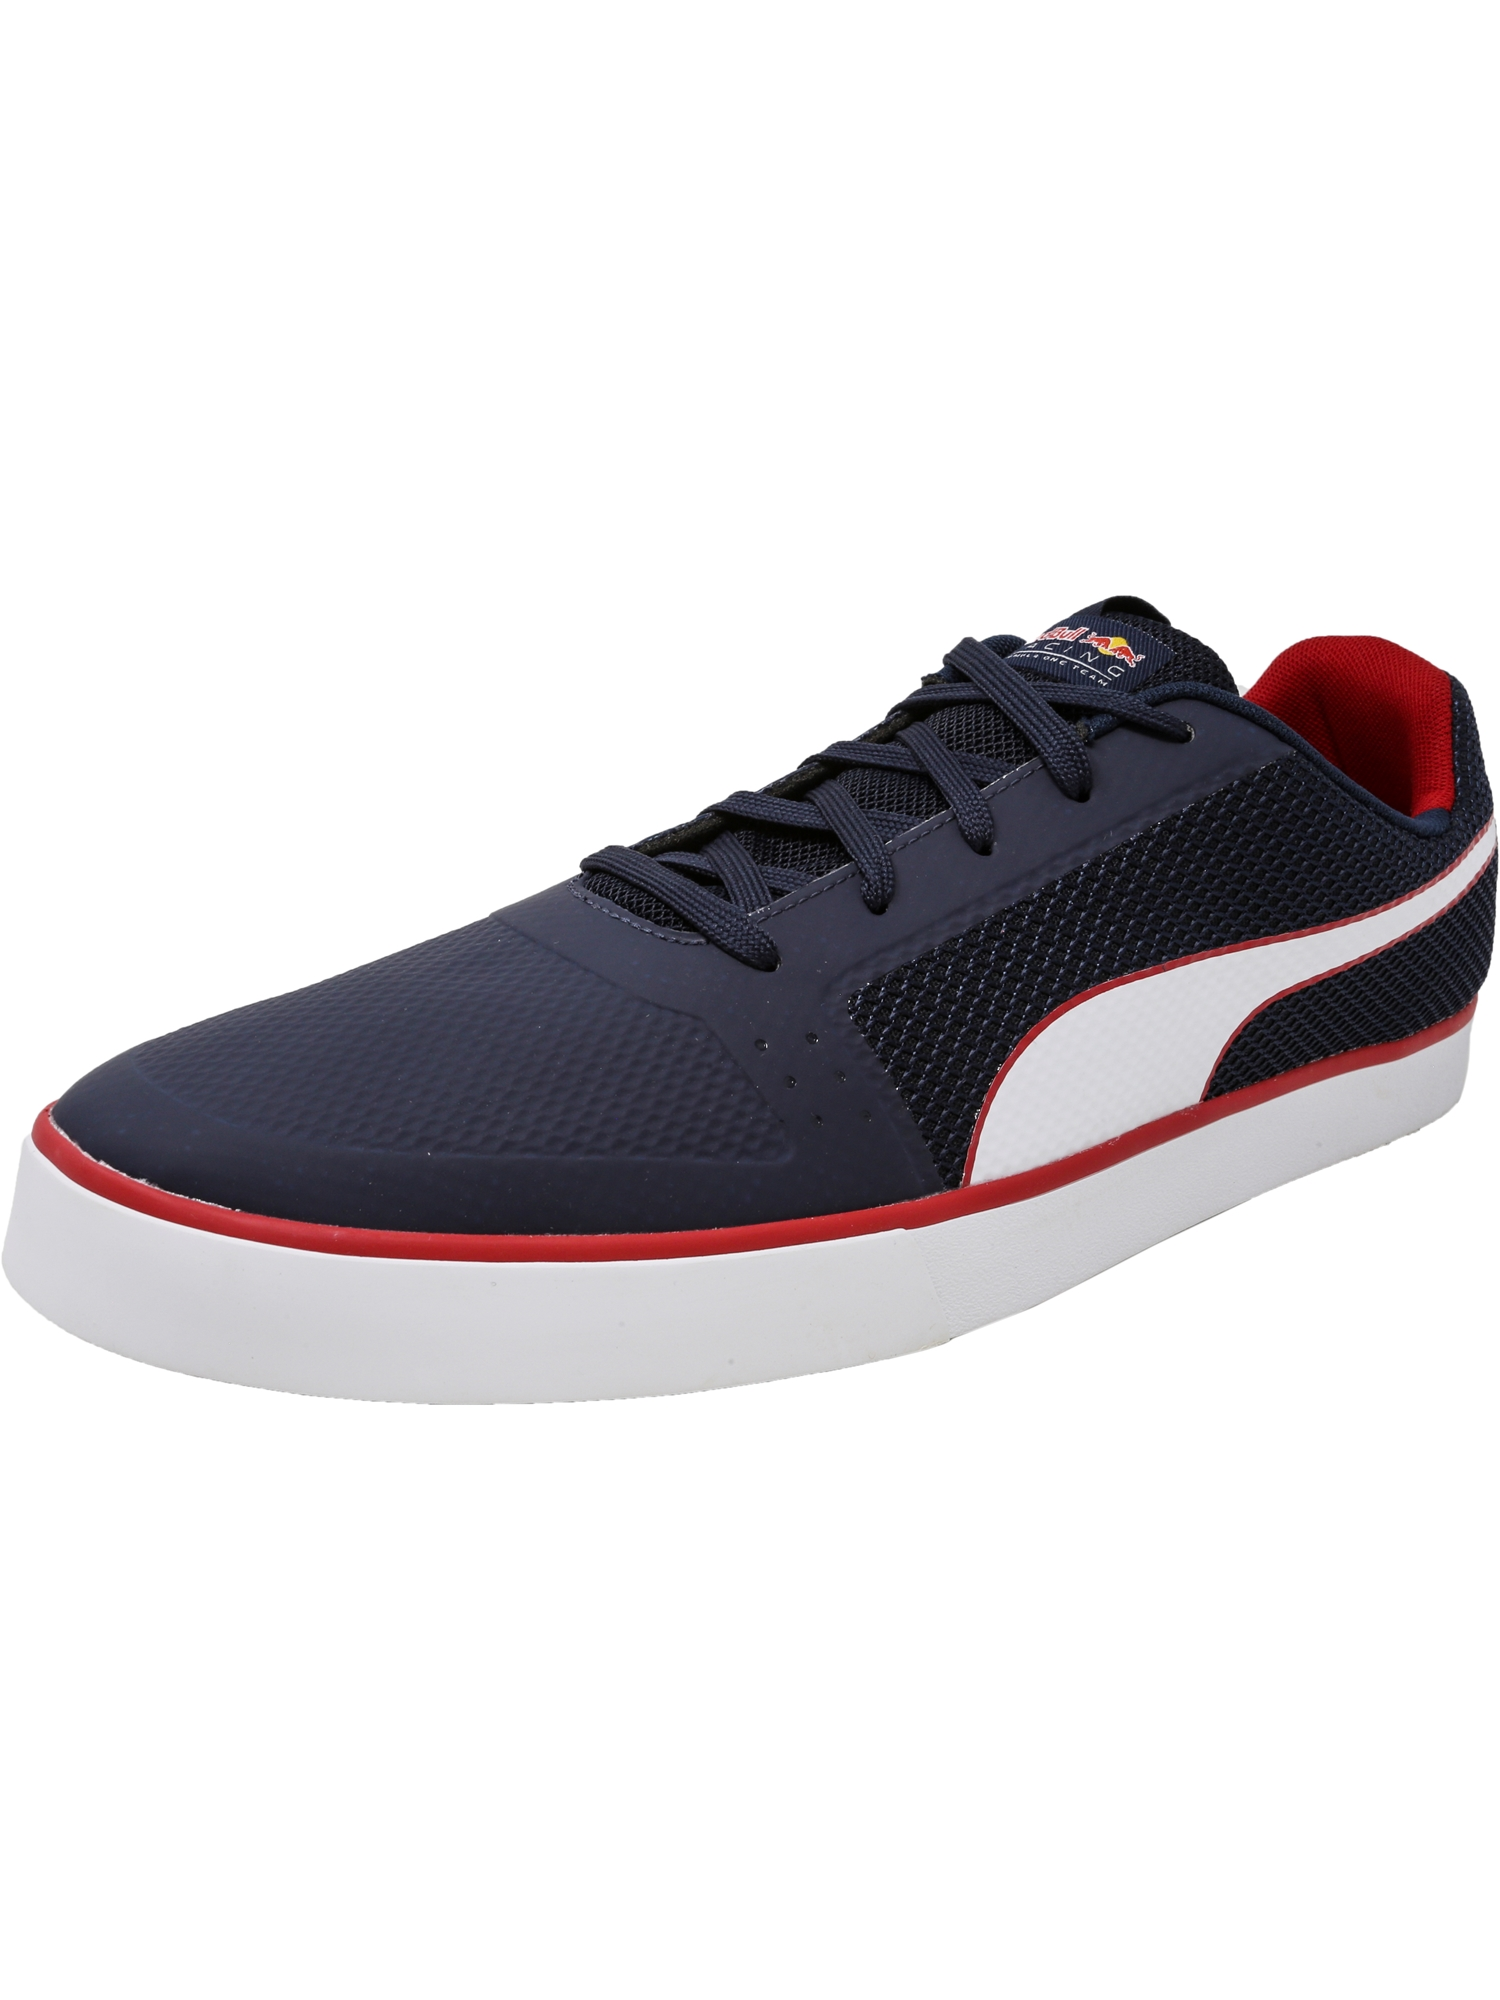 99ec9e54a22 ... amazon puma mens red bull racing wings vulc total eclipse white chinese  ankle high fashion sneaker